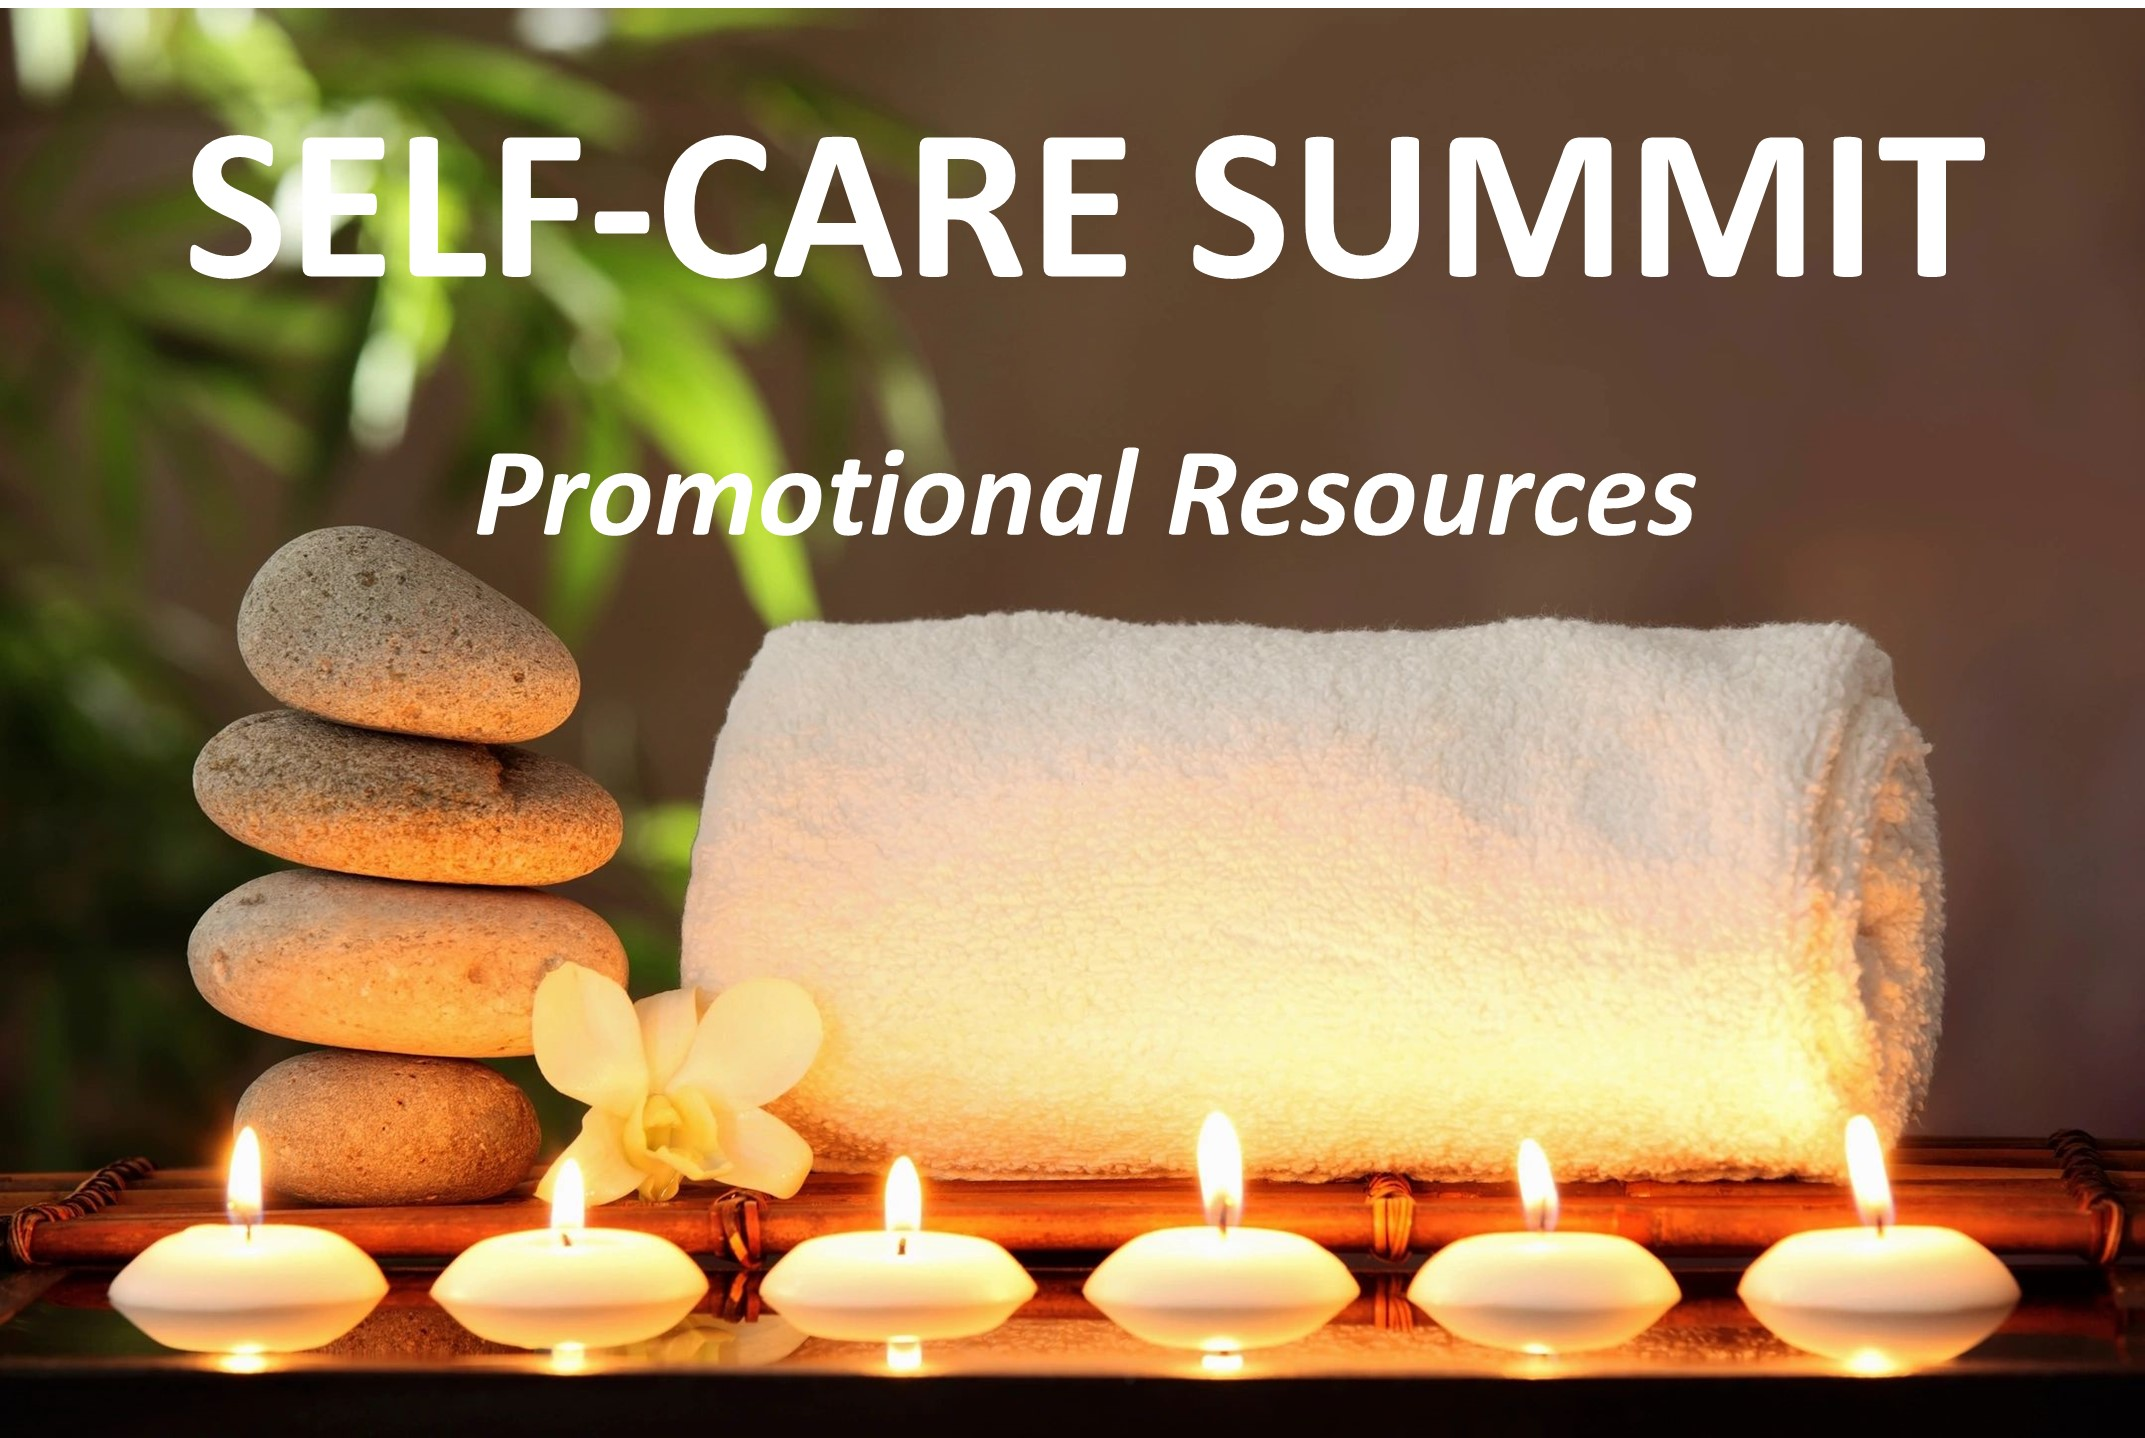 Self-Care Summit: Promotional Resources